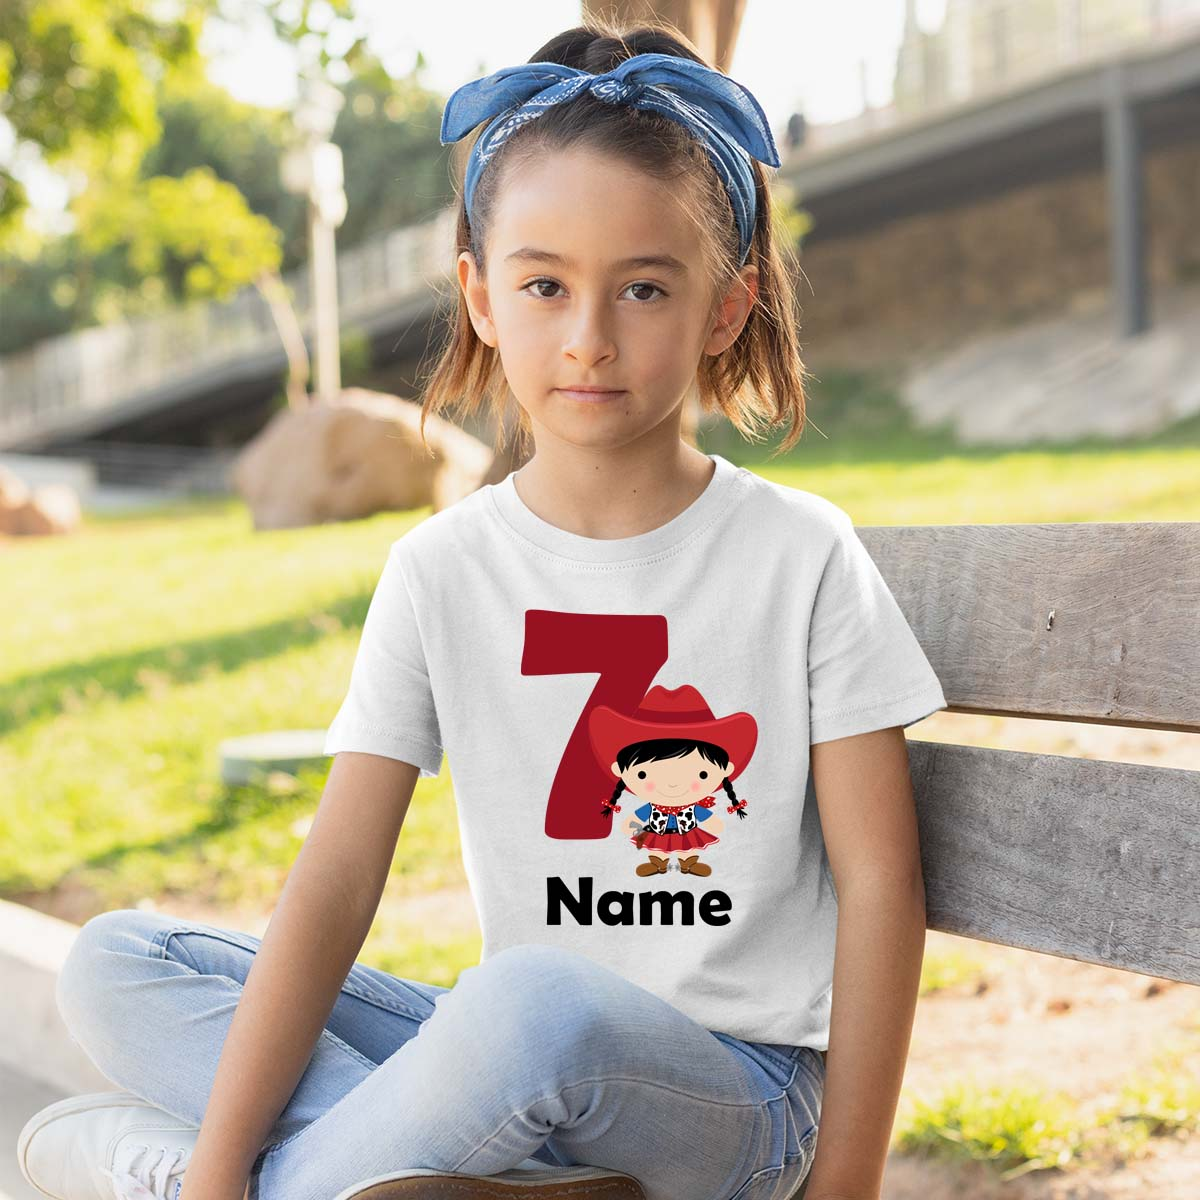 Sprinklecart Cow Girl Birthday T Shirt | Cute Personalized Birthday T Shirt for Your Little One